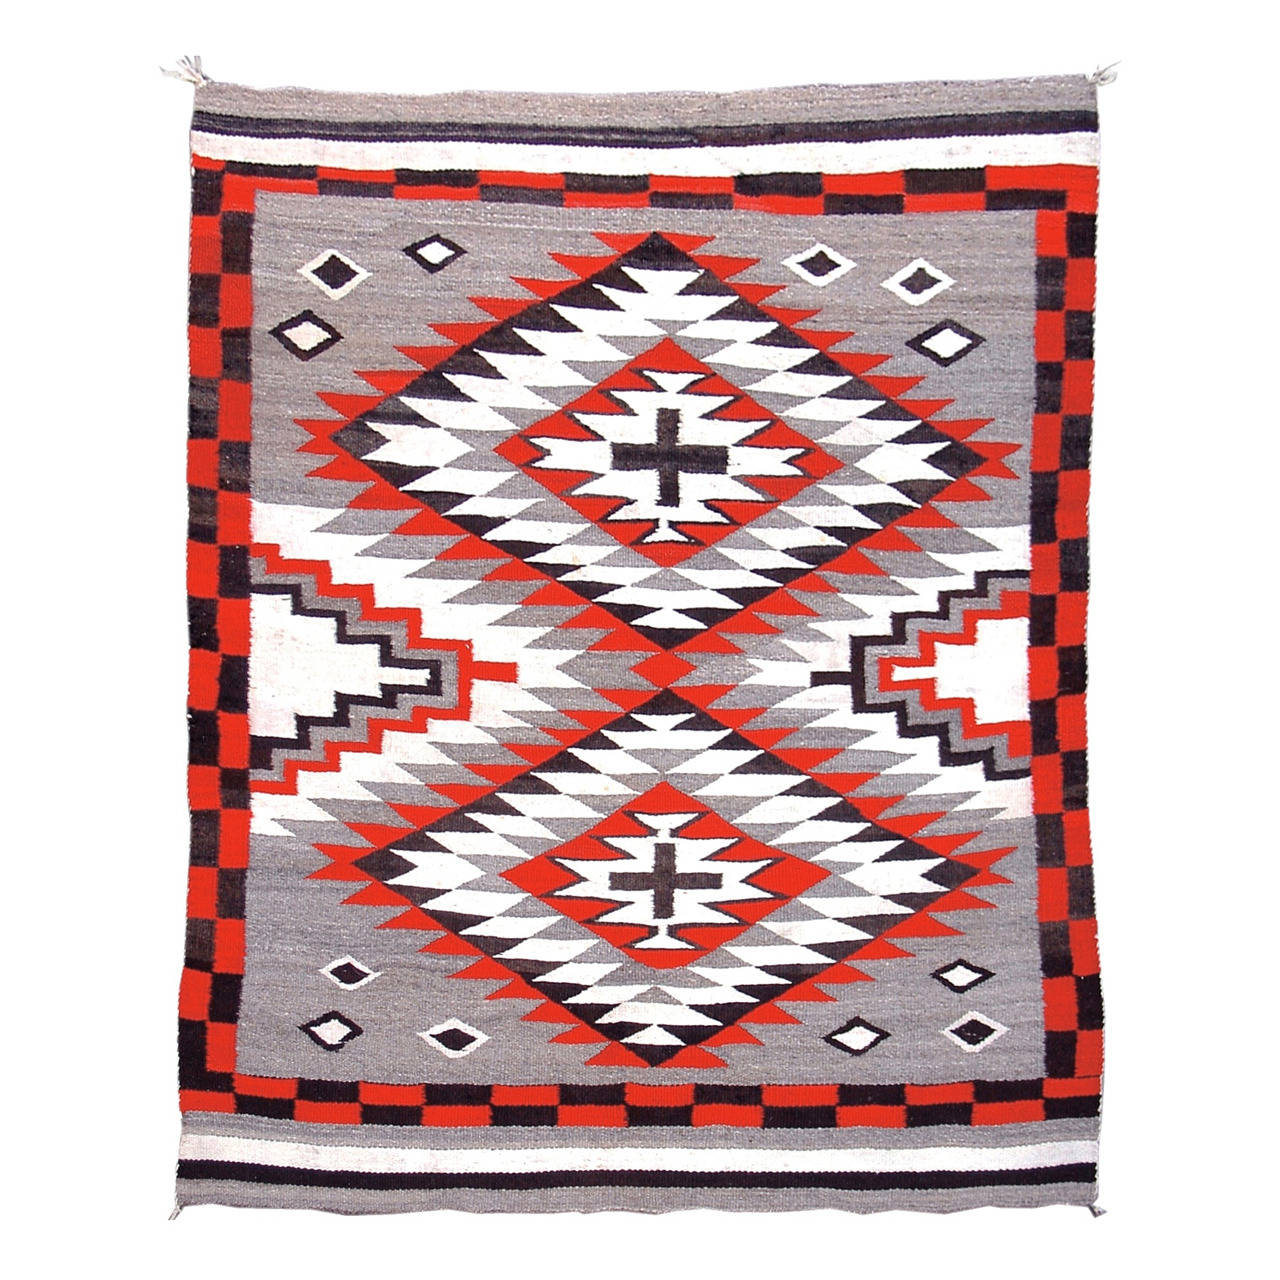 Traditional navajo rugs Authentic Early 20th Century Red And Grey Navajo Rug For Sale Rejuvenation Early 20th Century Red And Grey Navajo Rug For Sale At 1stdibs